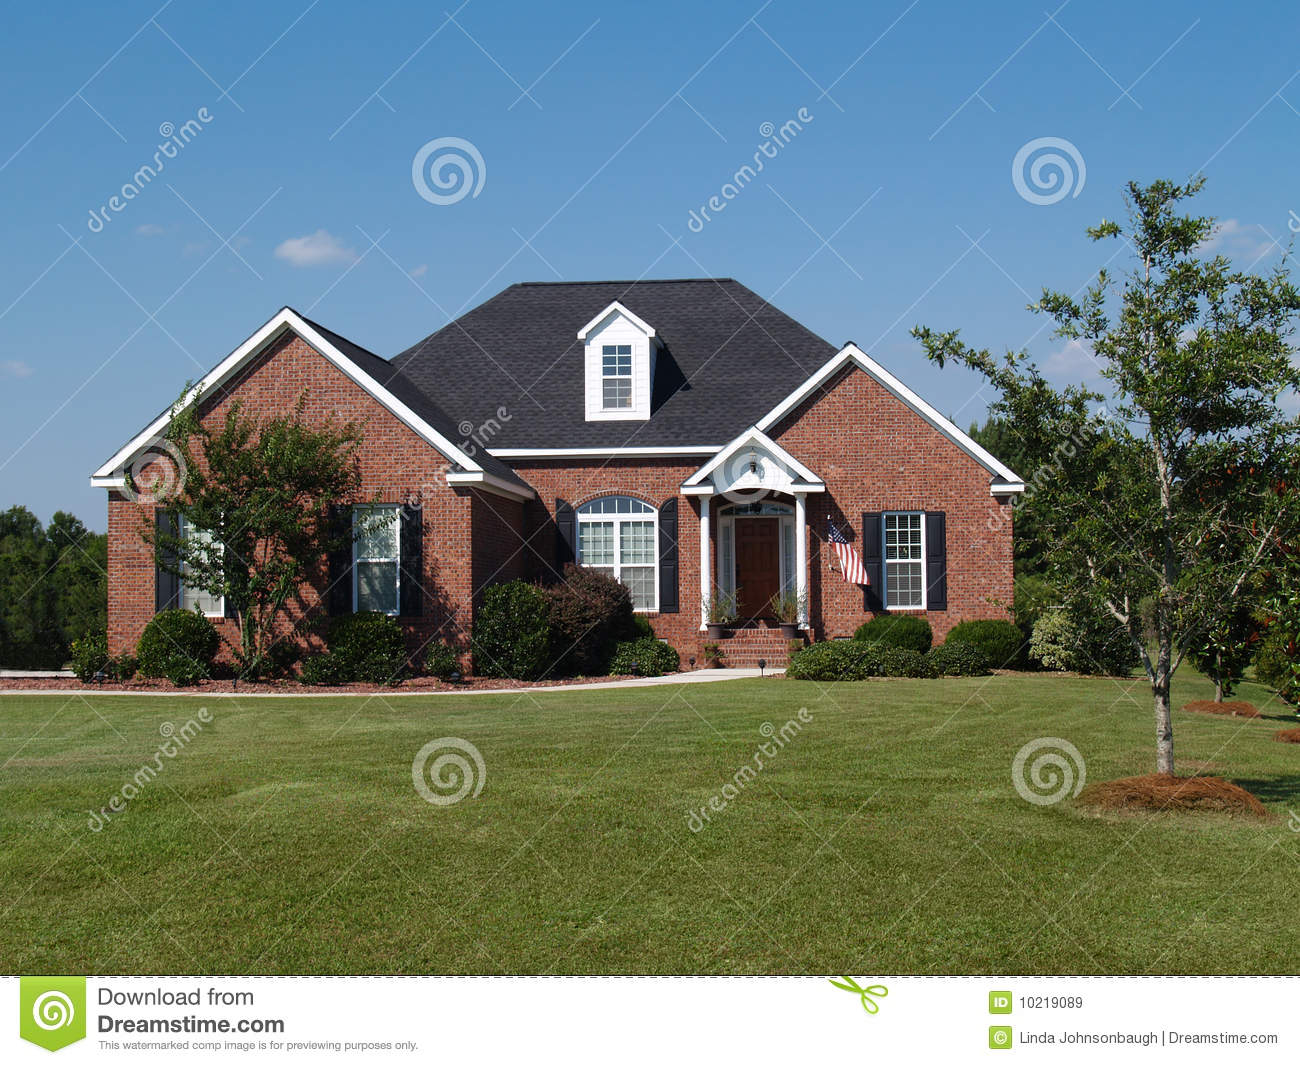 One story brick residential home royalty free stock for 1 story brick house plans